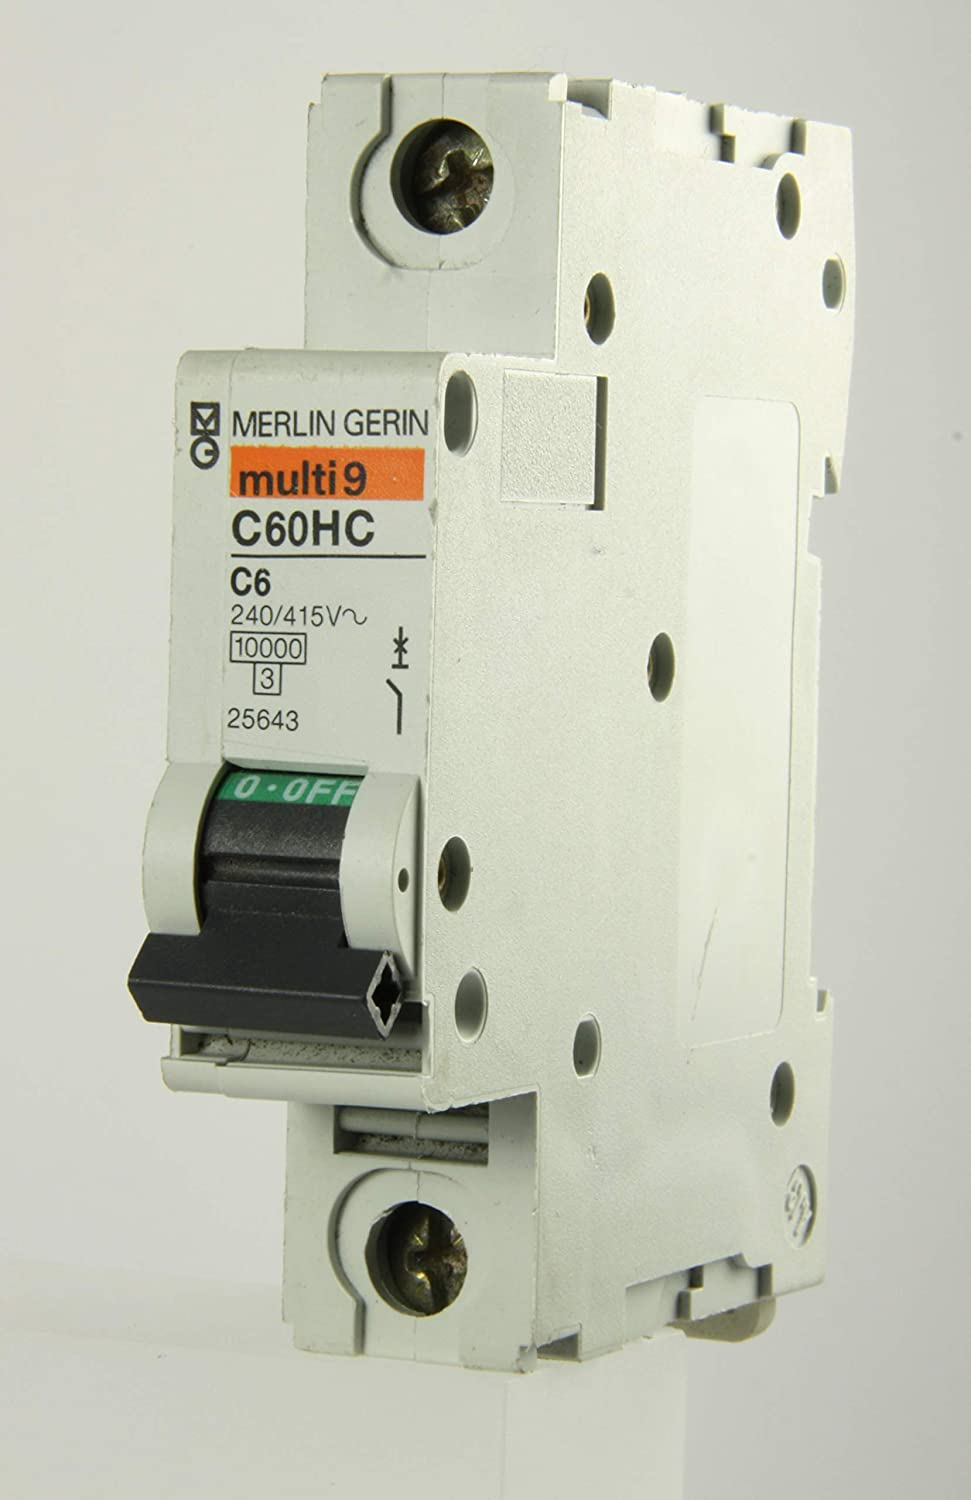 Merlin Gerin Multi 9 C60HC106-6a Type C Single Pole MCB